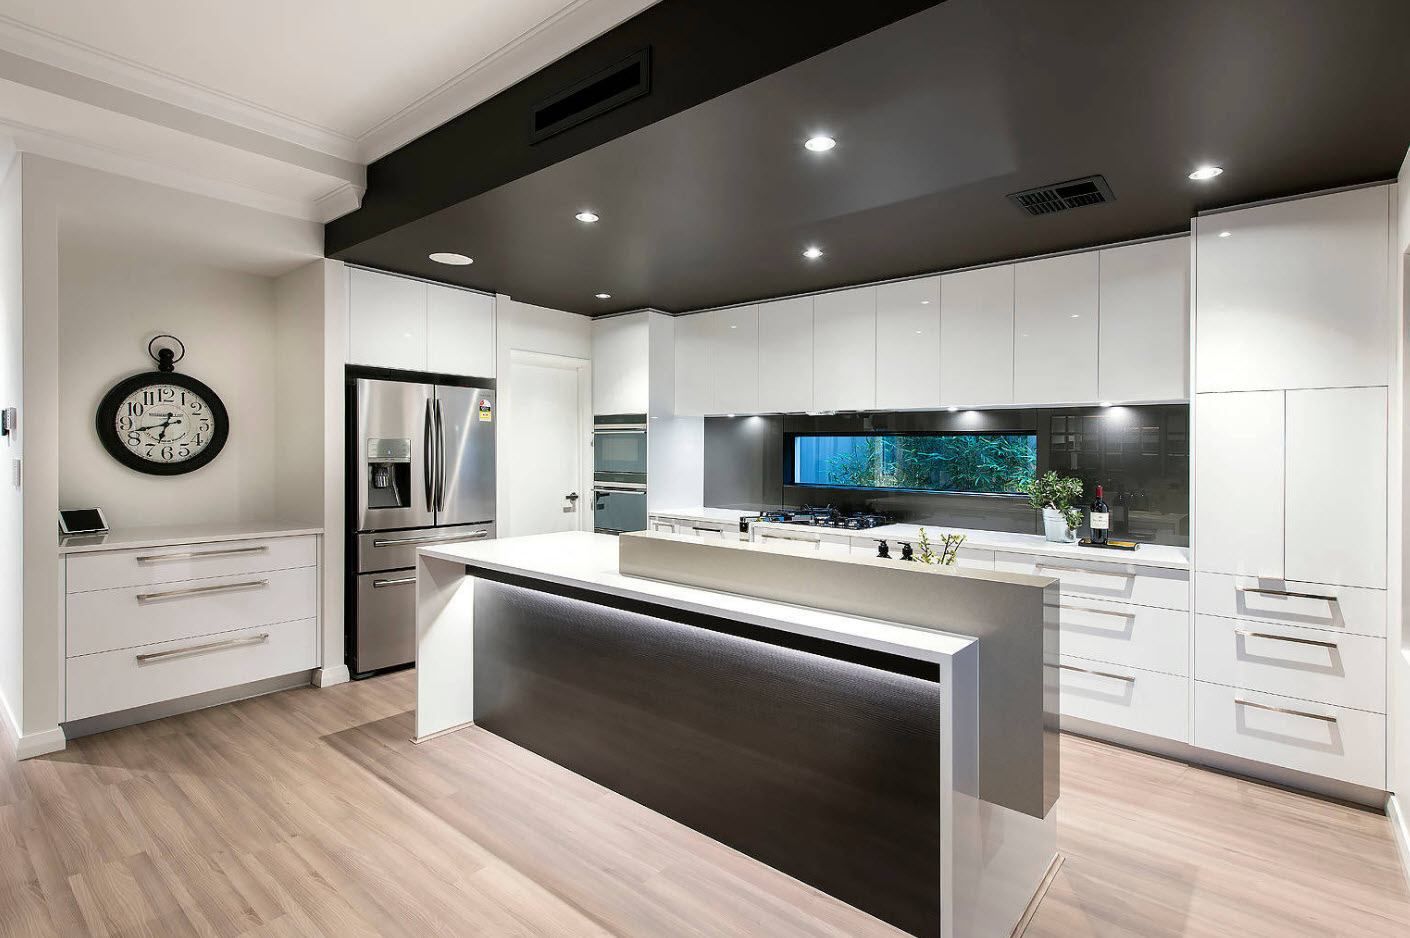 160 Square Feet Kitchen Design Ideas. Gorgeous dark ceiling with built-in fixtures